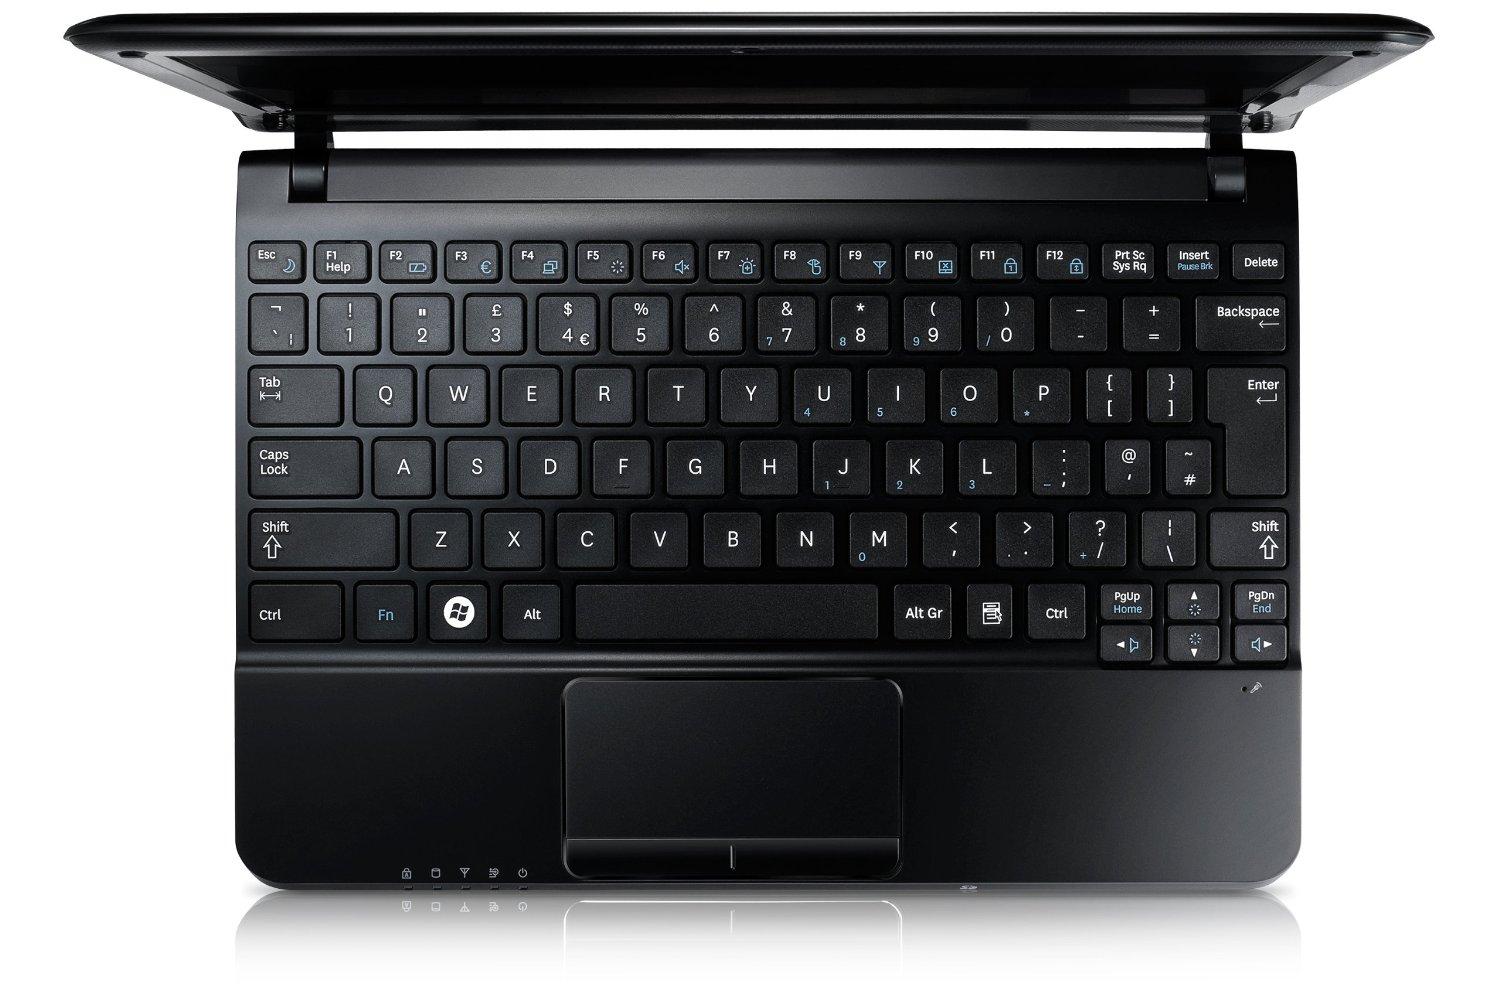 Notebook samsung price in pakistan -  Samsung Nc110 10 1 Inch Laptop Slightly Used